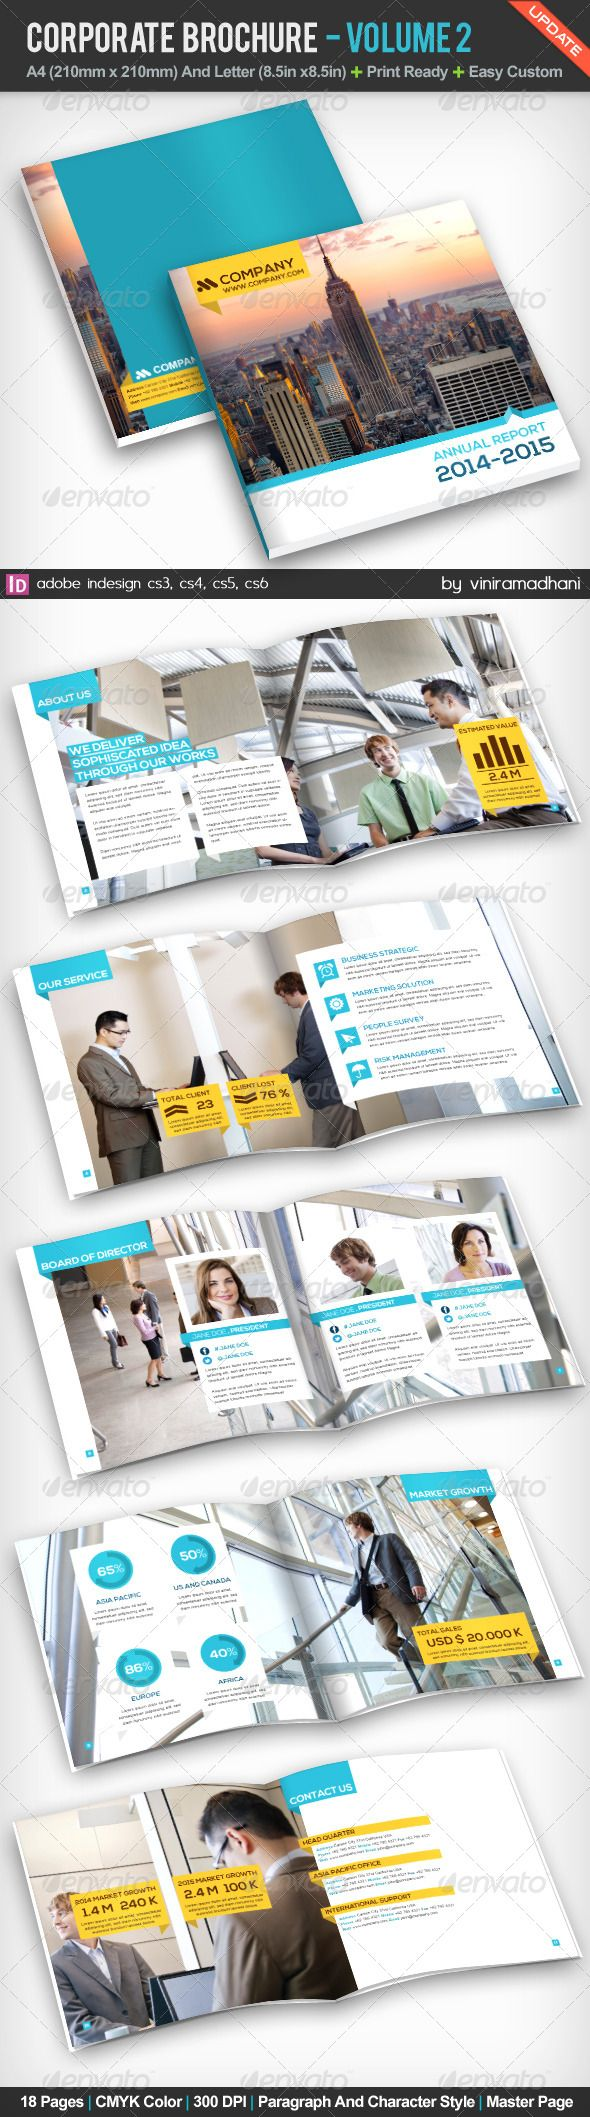 Best Business Proposal Design Images On   Page Layout